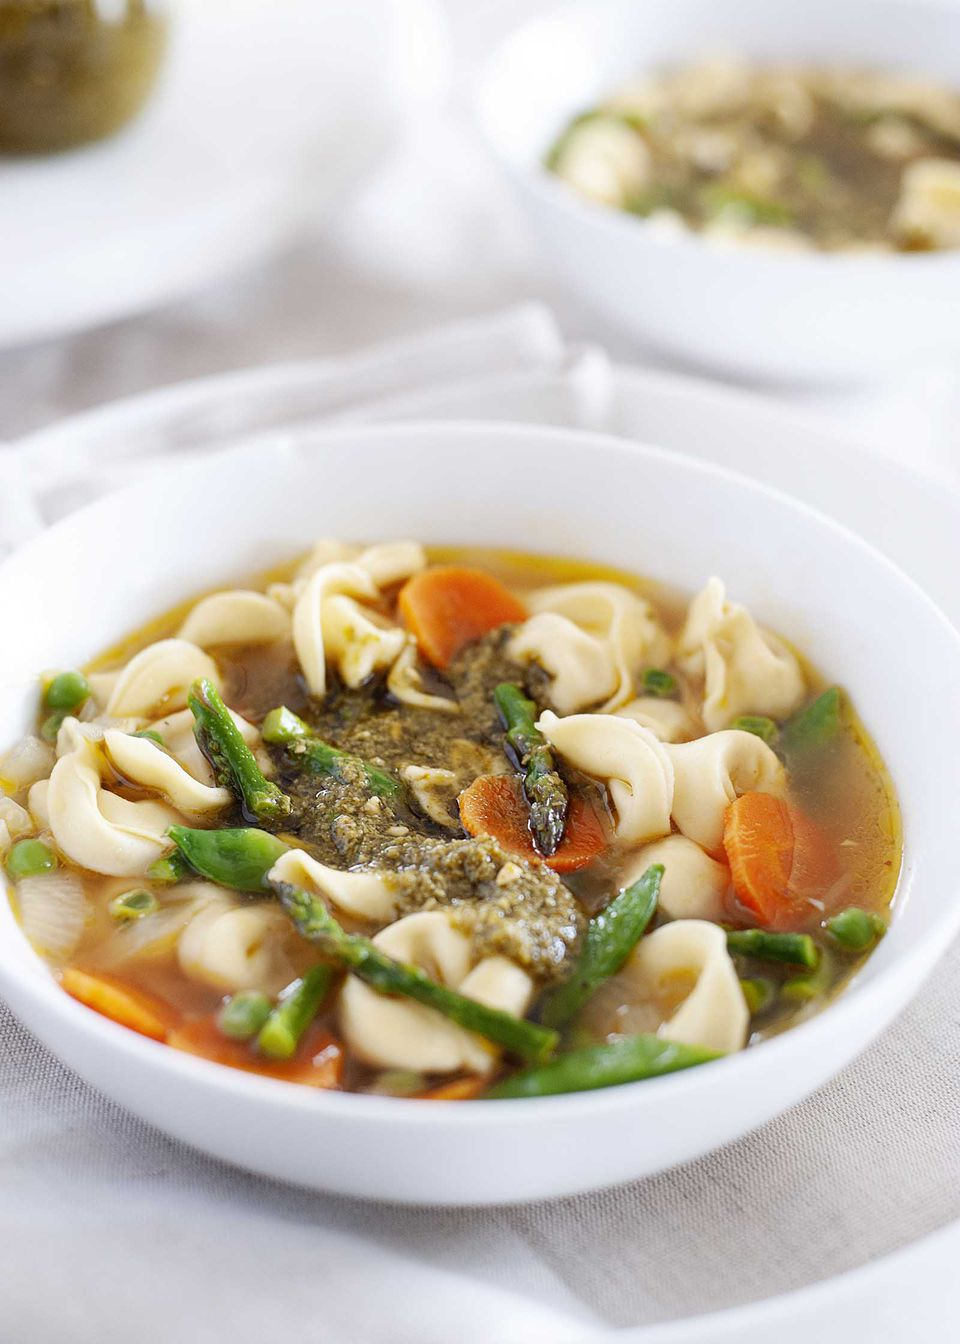 Bowl of vegetarian soup with tortellini in a white bowl on a table with a second bowl in the background. Chopped asparagus, sliced carrots and pesto are visible with the tortellini.